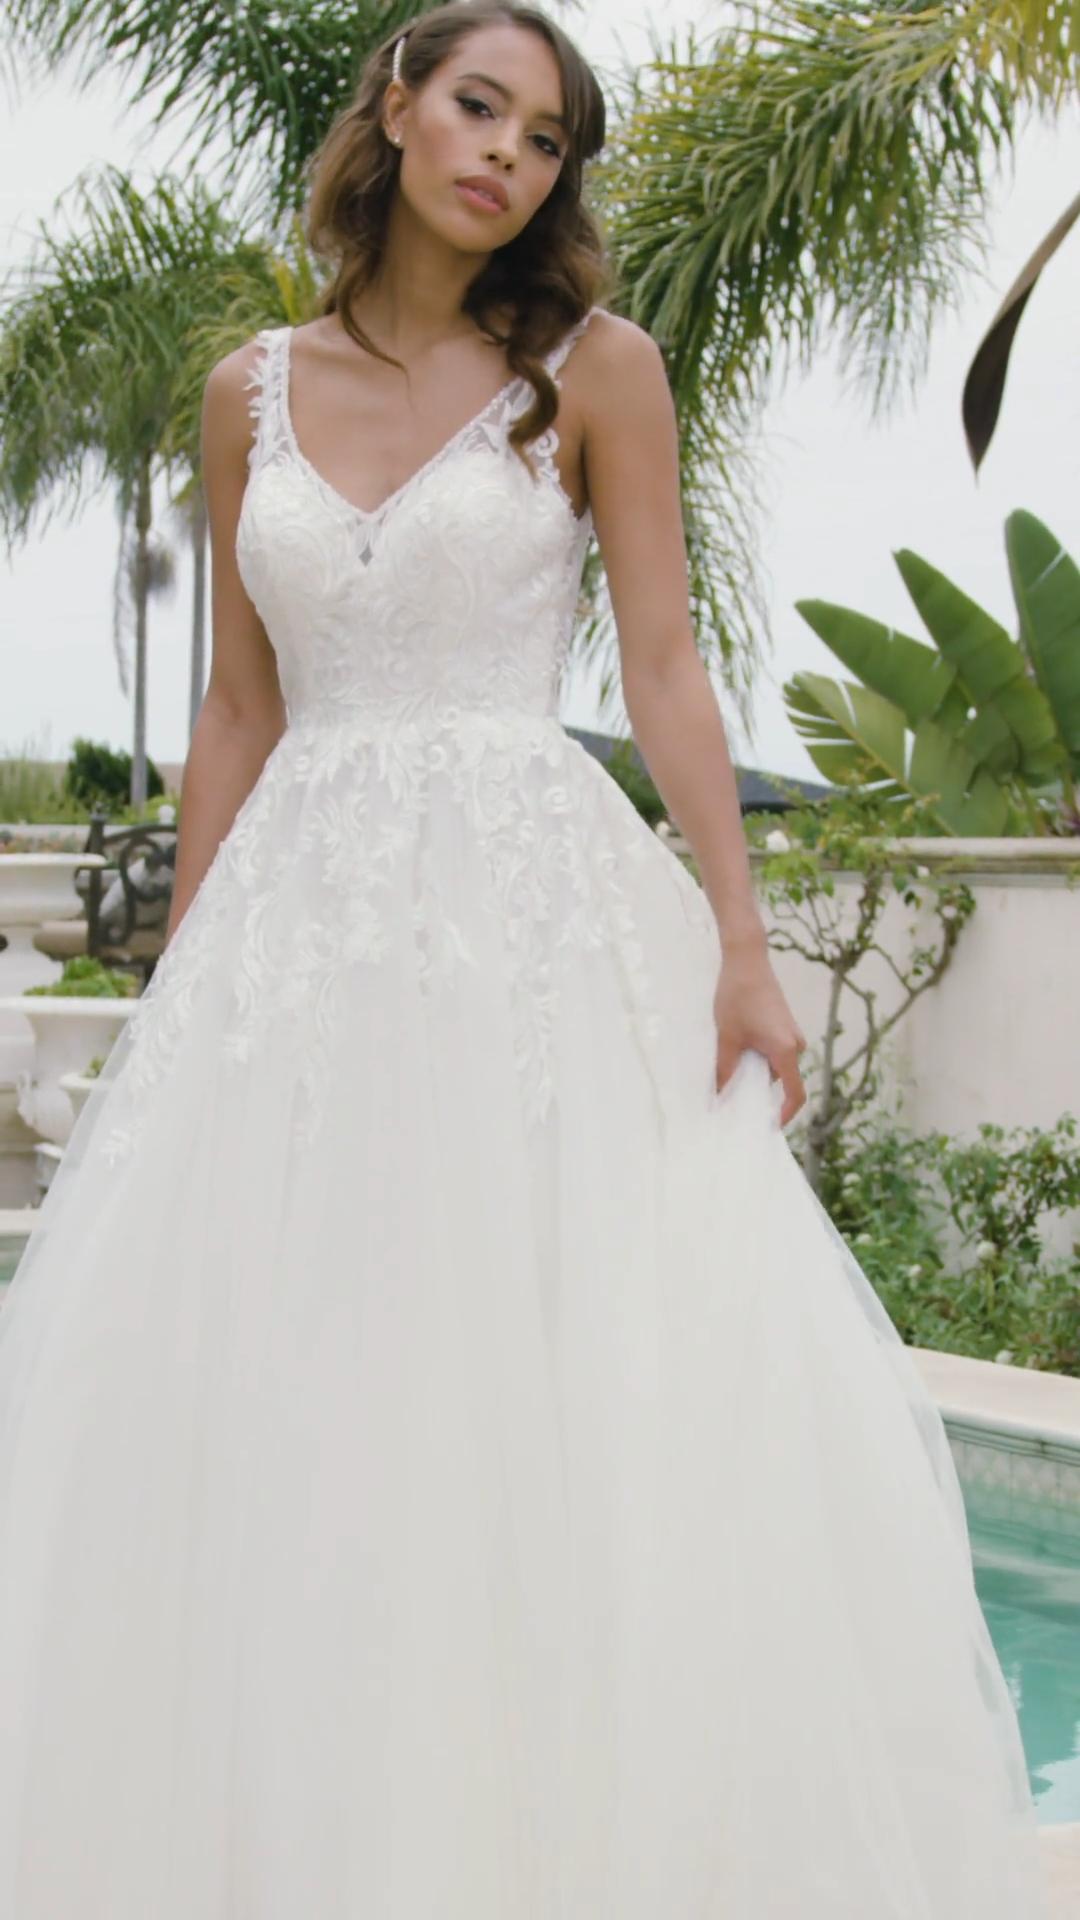 Moonlight Tango T930 V-neck A-line wedding dress with lace bodice and beaded trim necklines and buttons along illusion back